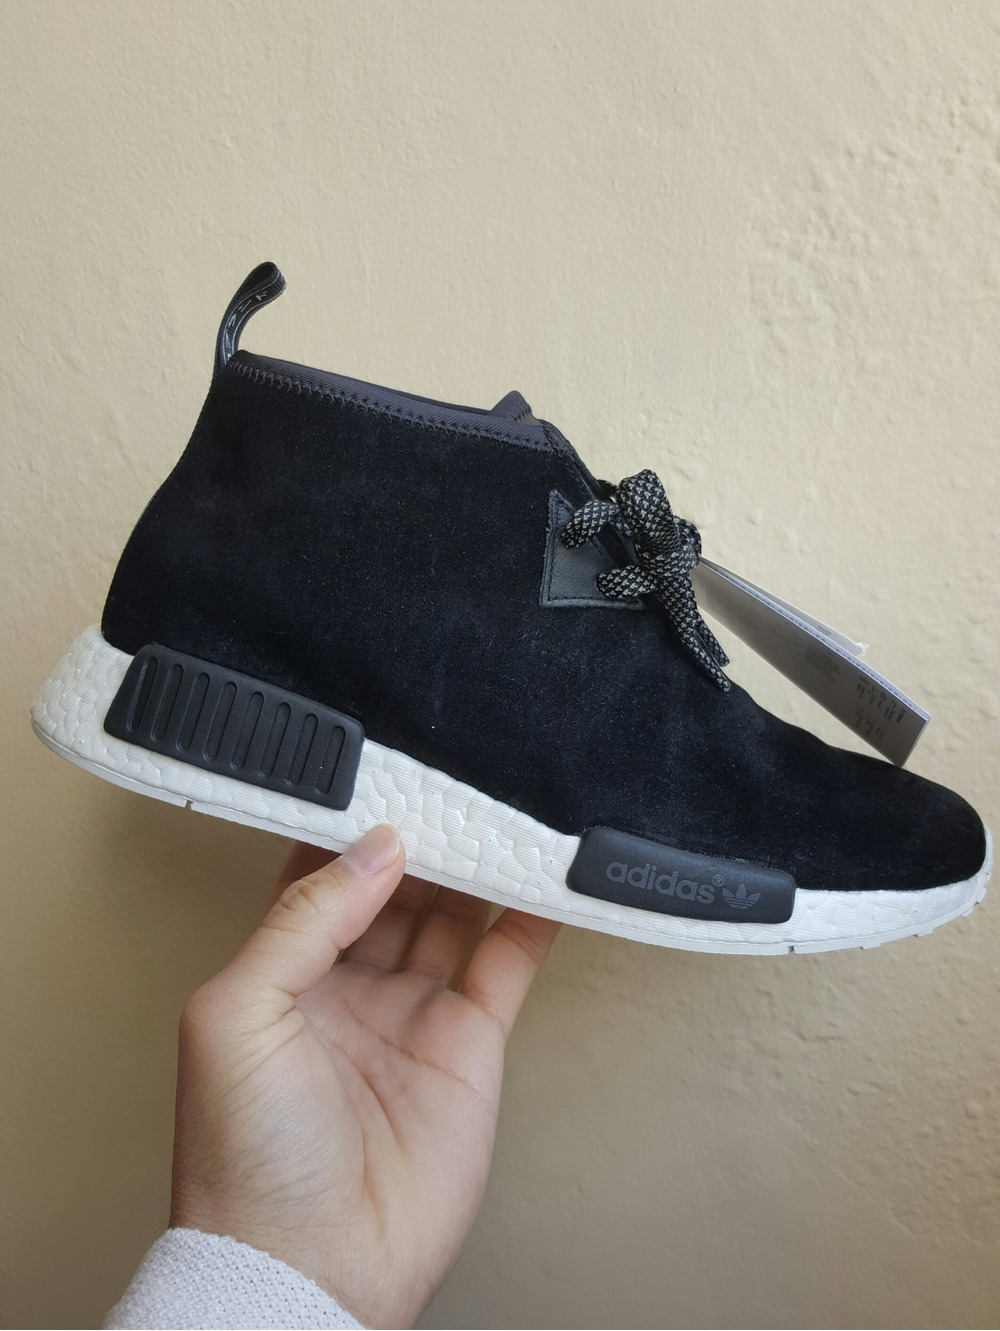 1609 ADIDAS ORIGINALS NMD_C1 TRAIL MENS Sharon Mallin